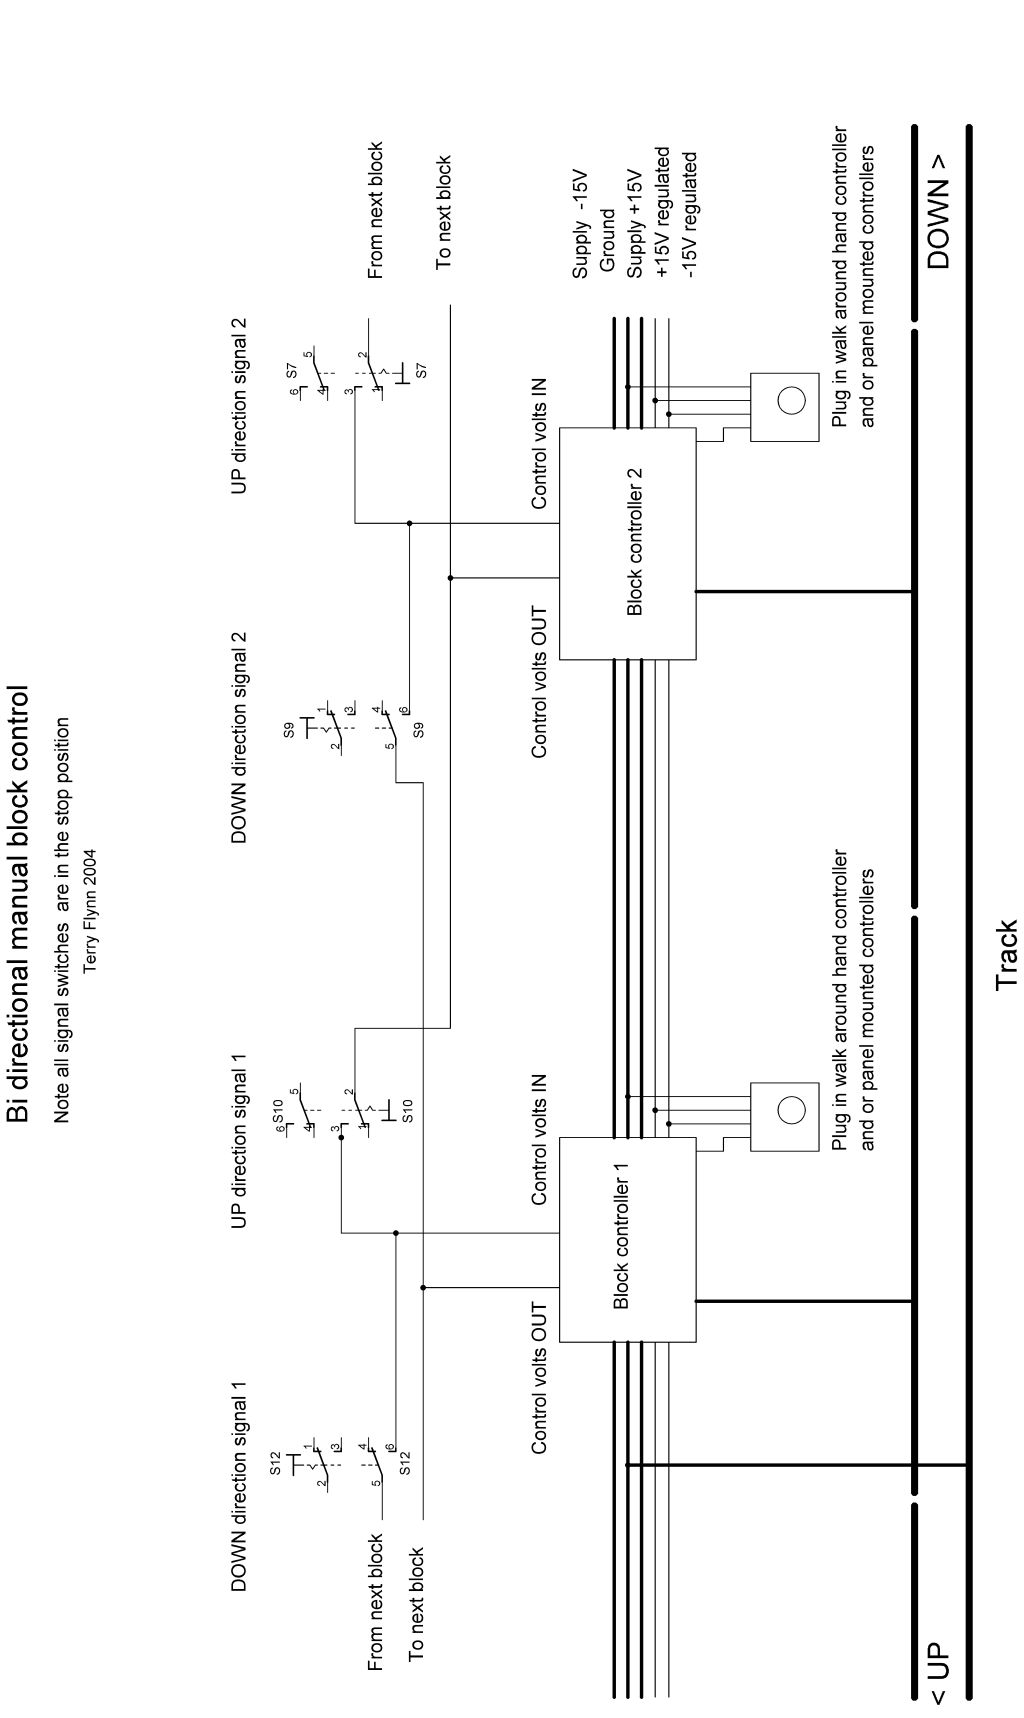 Cab Control Two Power Supplies Dc Wiring Diagram,Control